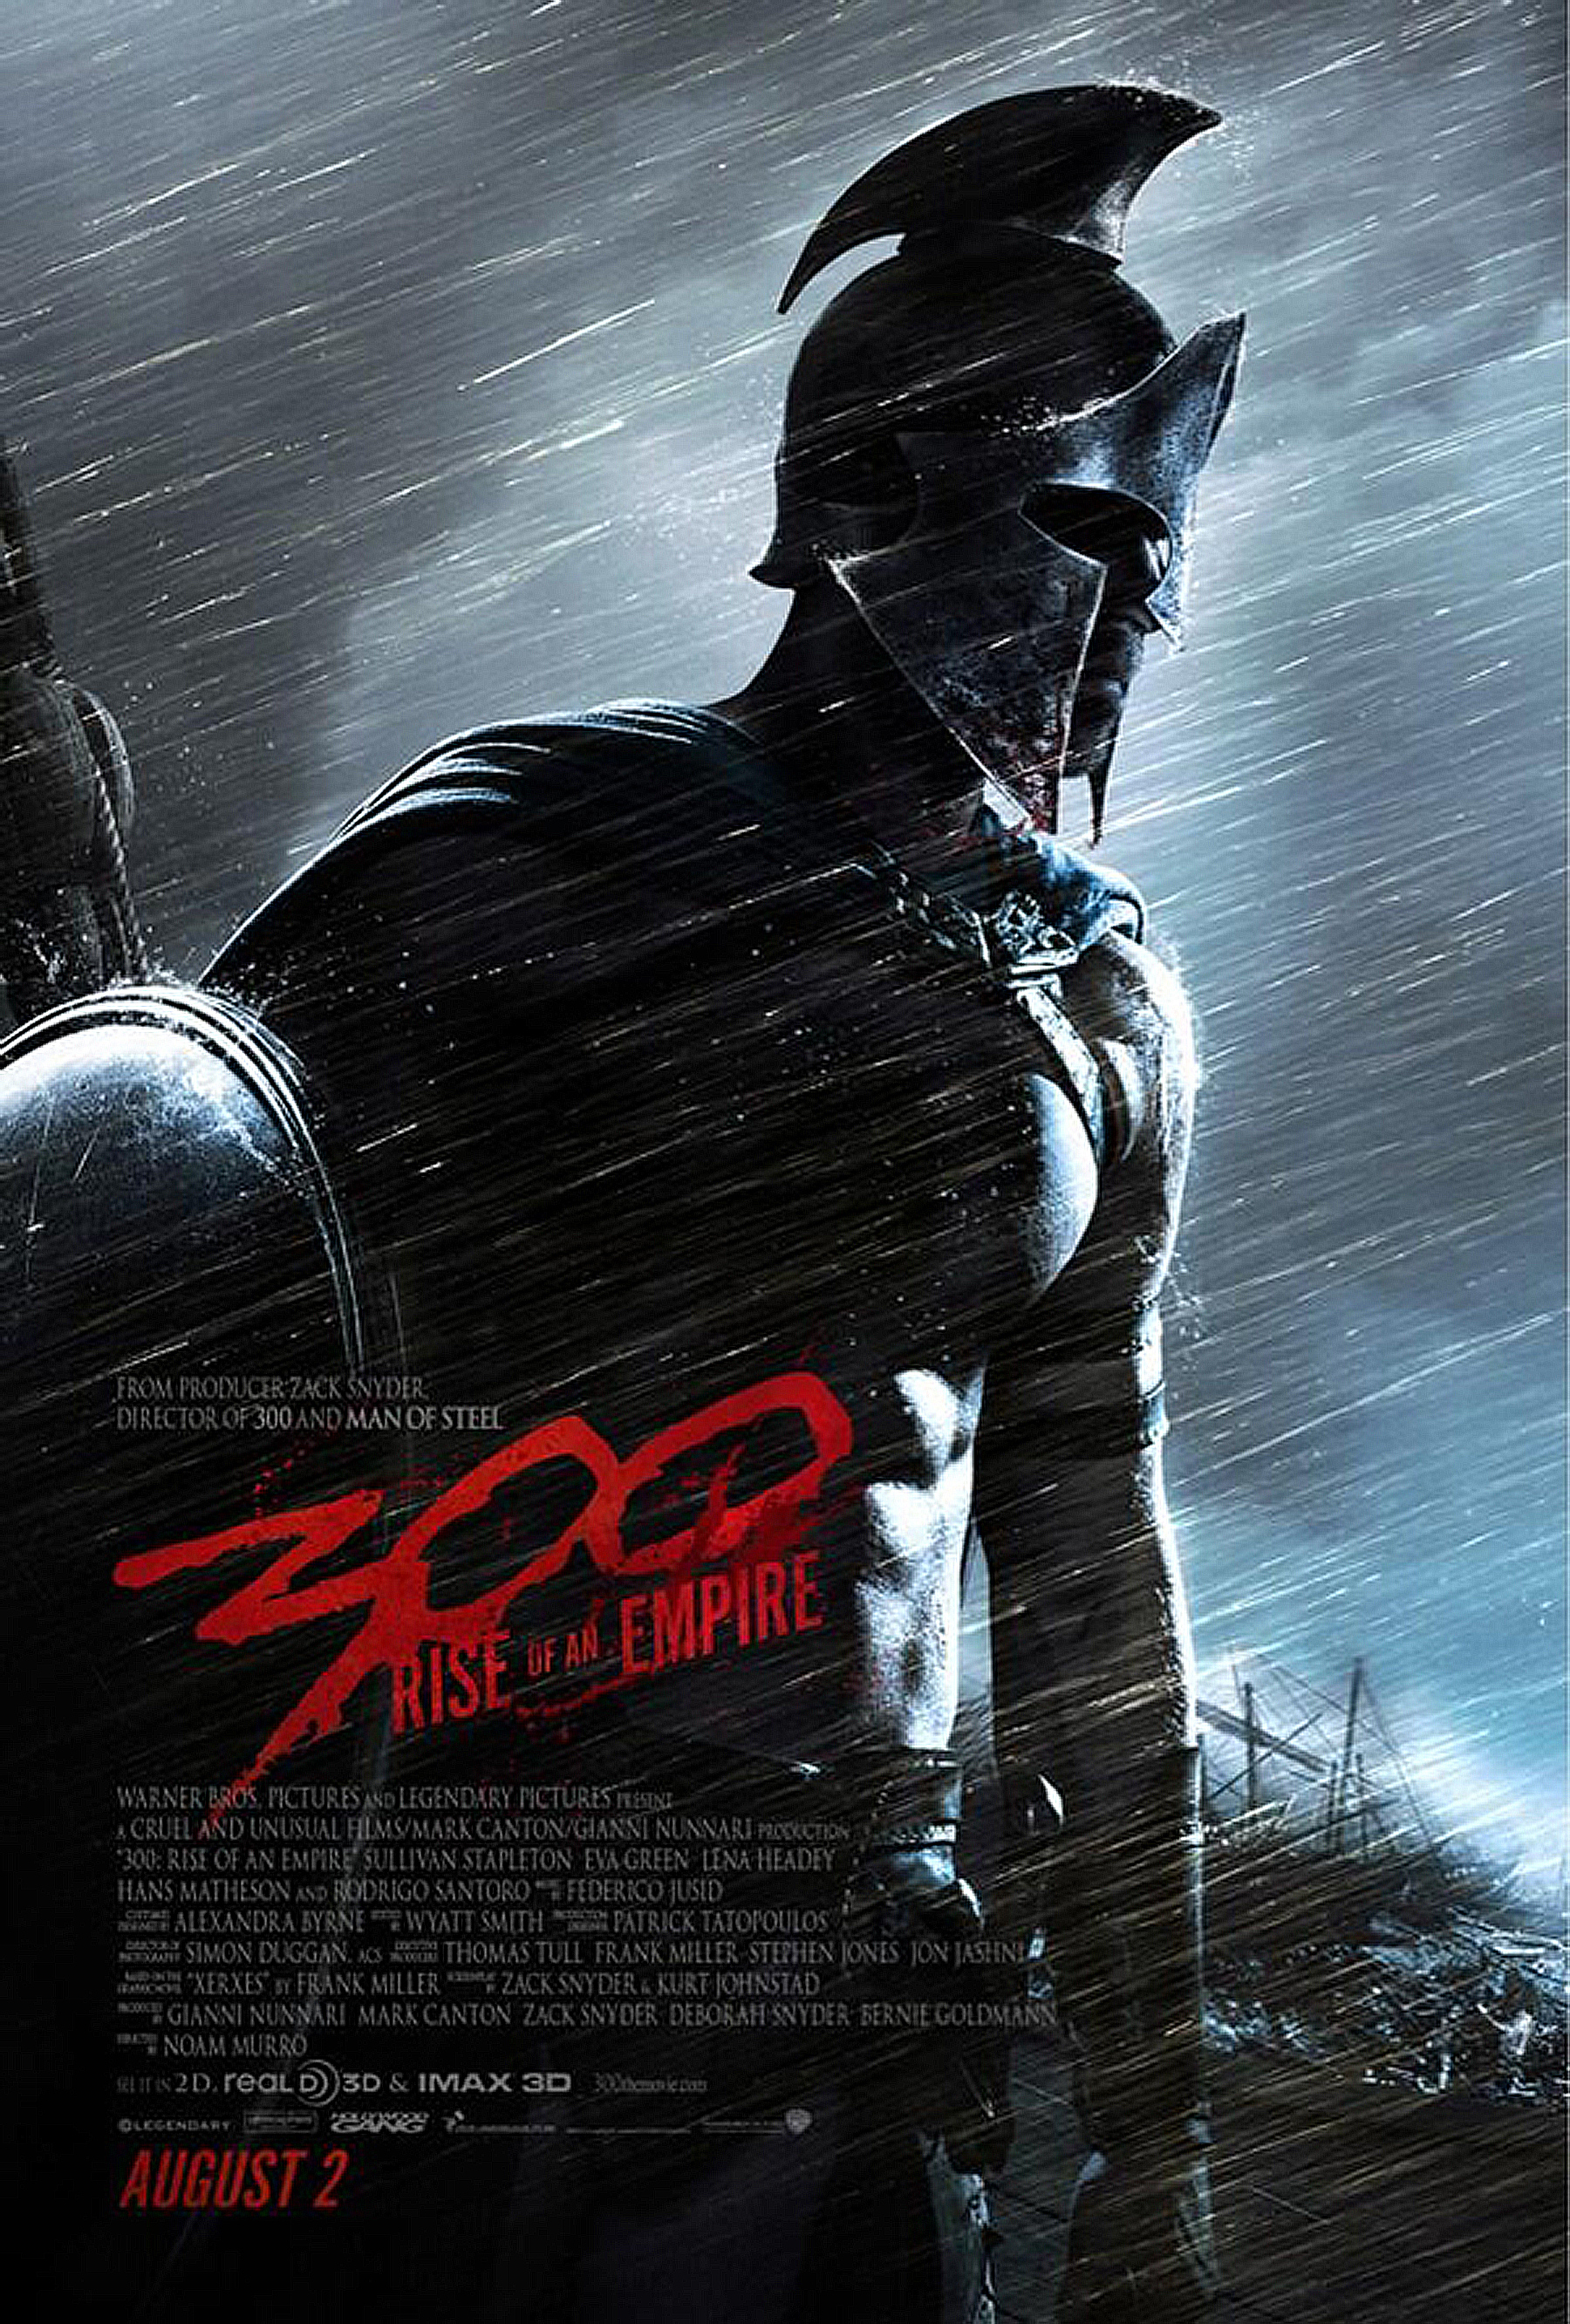 300 Rise of an Empire 300 Sequel Poster - 300 Photo (34264453 ...